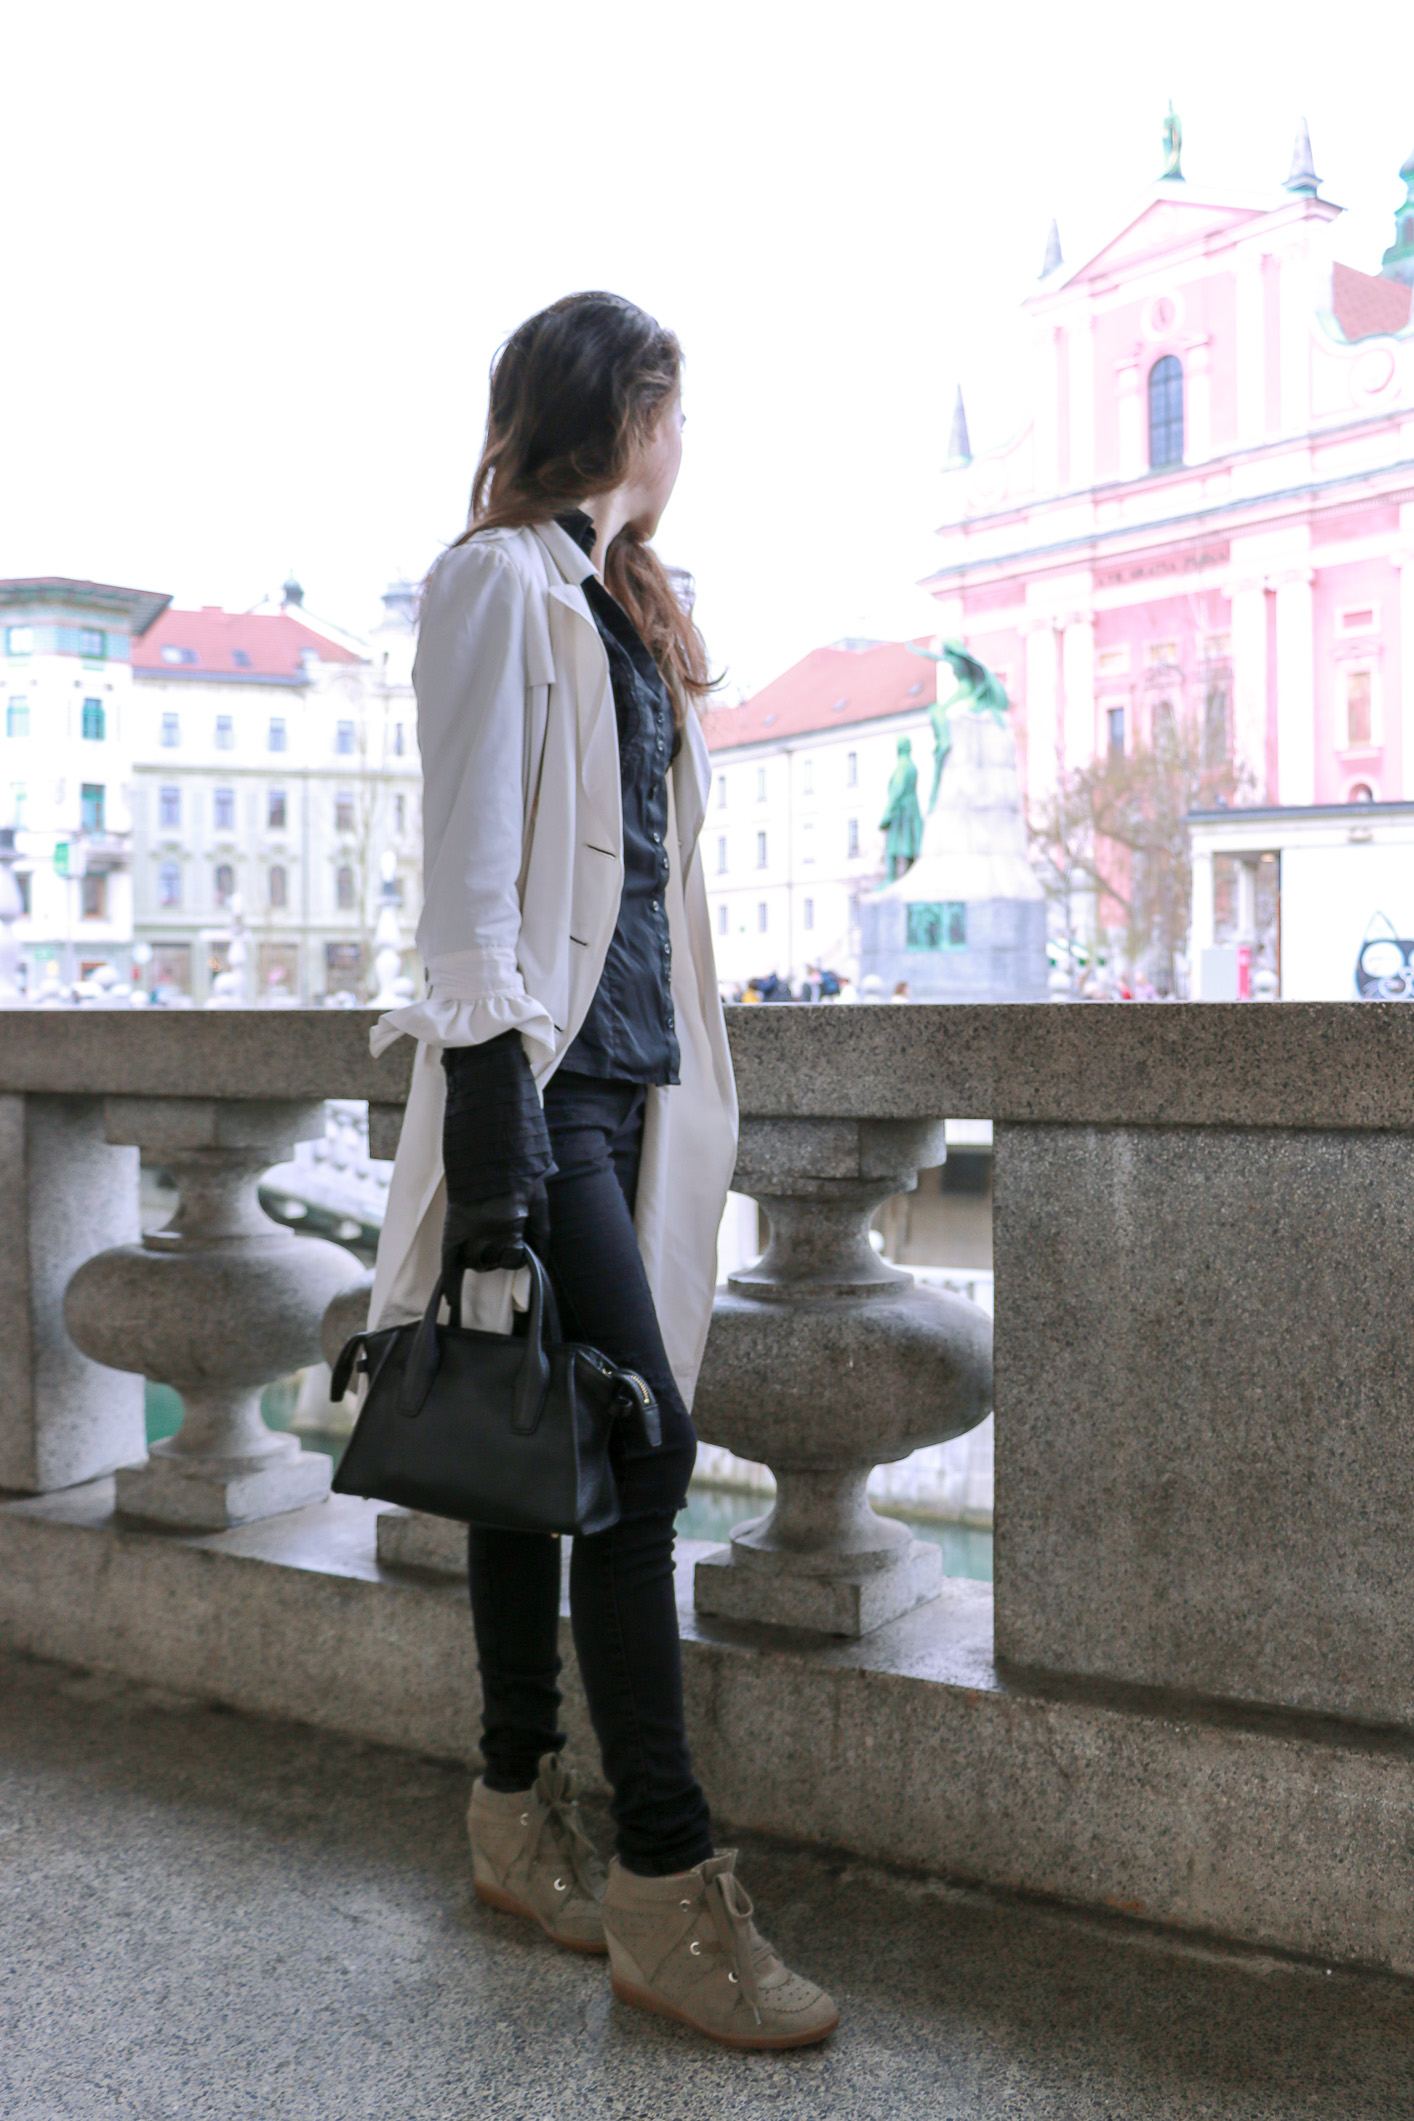 Fashion blogger Veronika Lipar of Brunette From Wall Street on how to look stylish wearing long ruffled sleeves